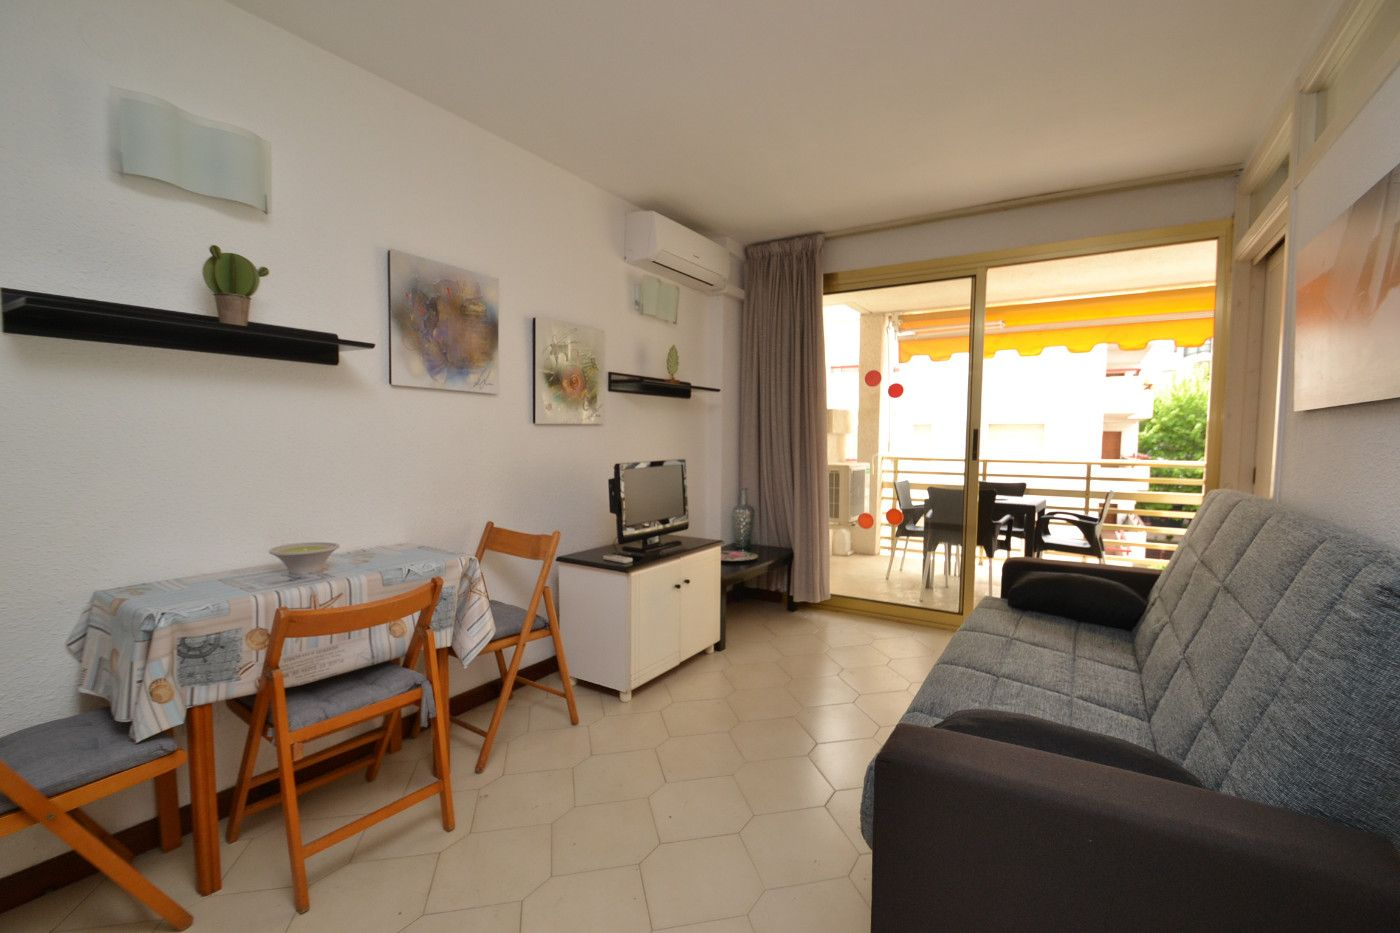 Rent Apartment in Carrer berlin (de), 11. Disponible hasta mayo 2021